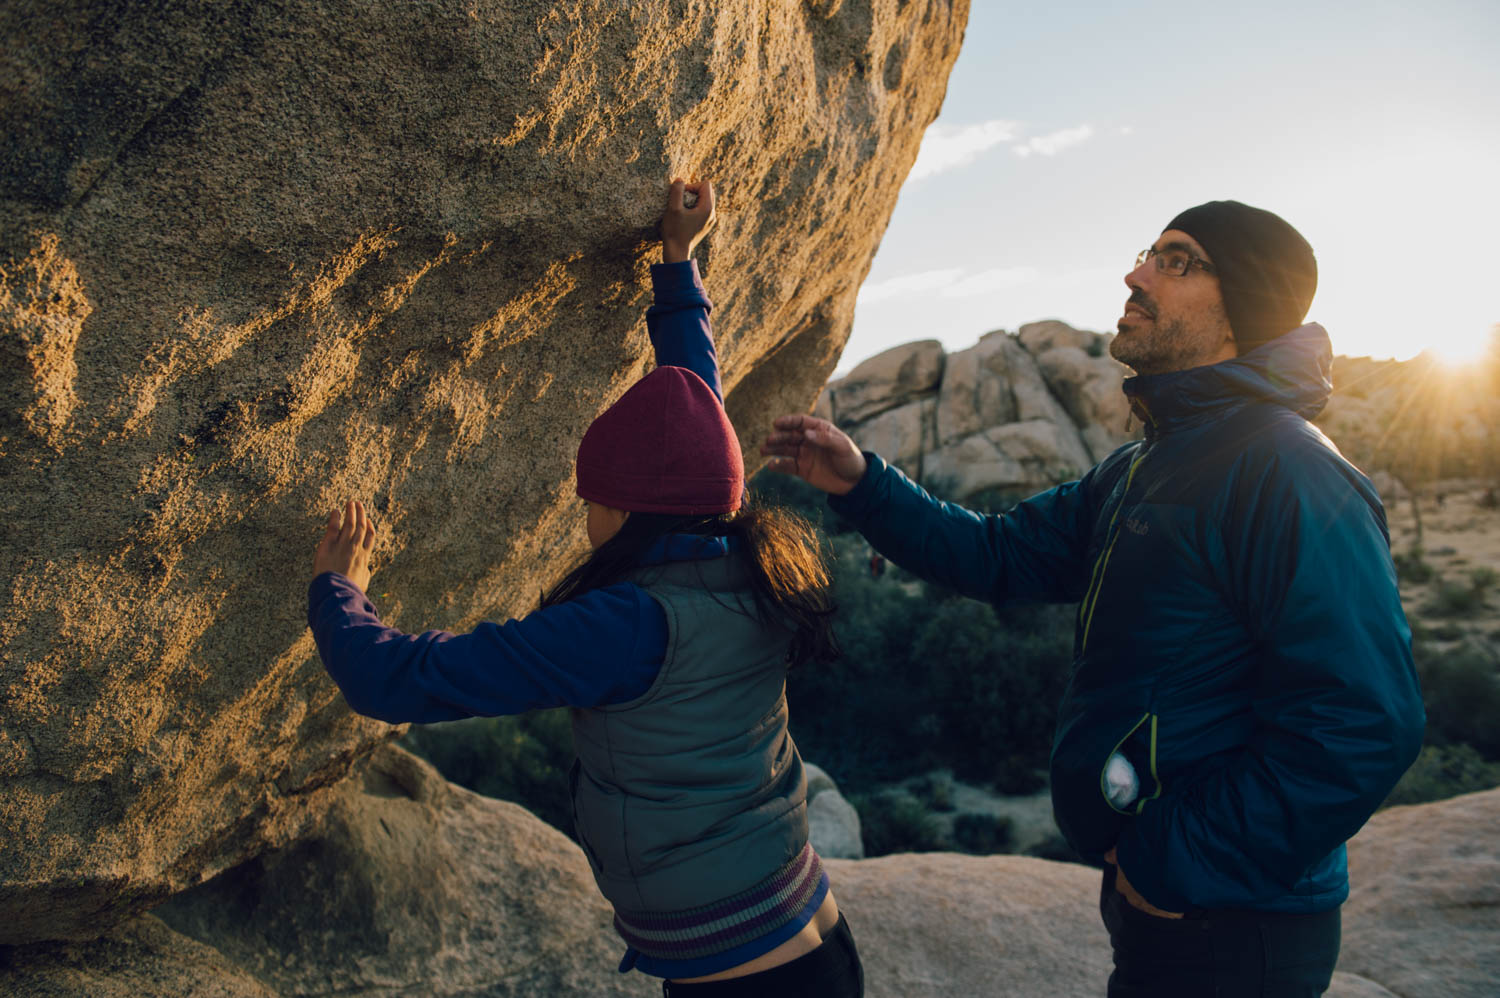 Exploring a bouldering area. They now want a crash pad for Christmas! Perfect!